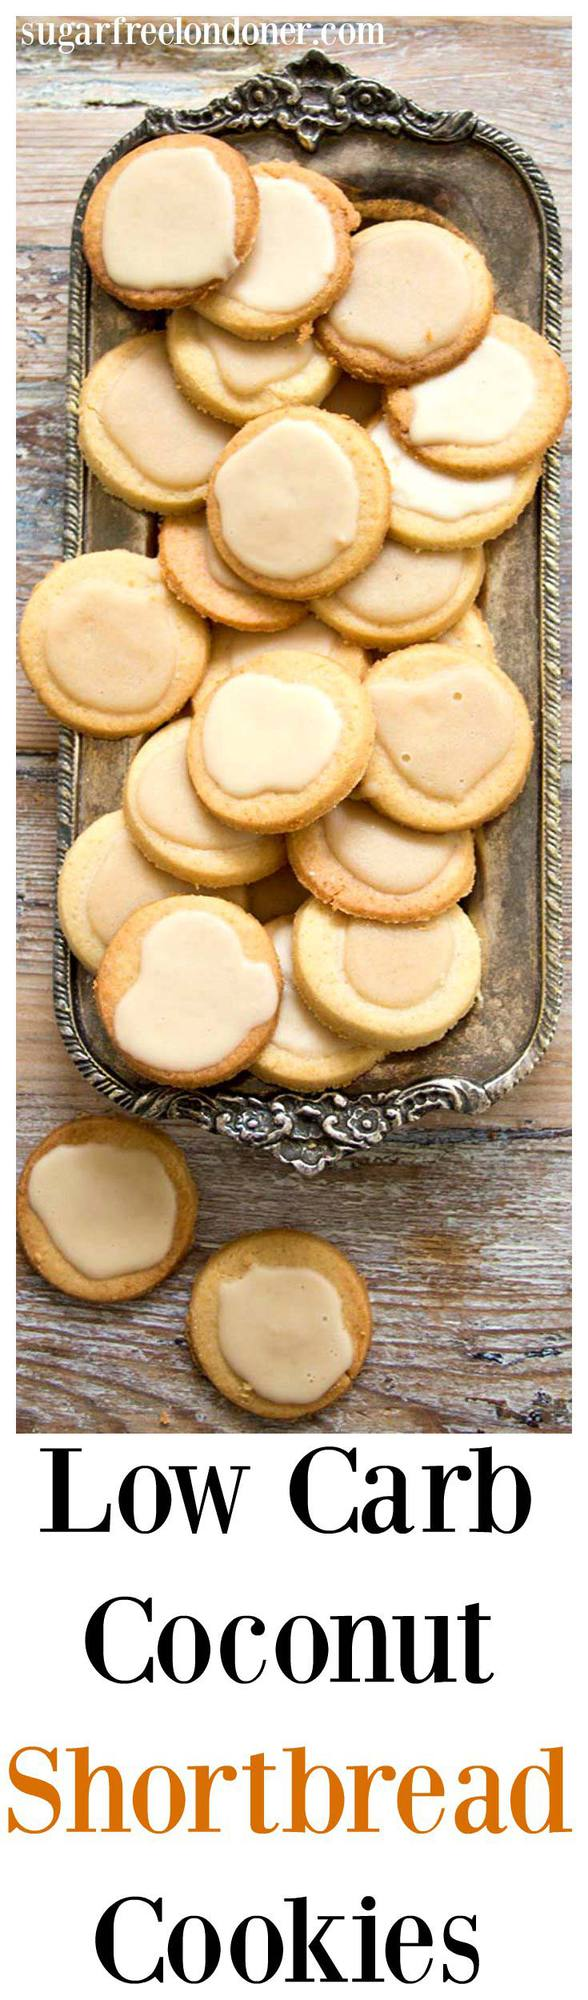 A low carb and entirely sugar free take on classic shortbread biscuits. Low Carb Coconut Shortbread Cookies are light, buttery and crumbly with a deliciously rich coconut butter glaze. Perfect for diabetics, gluten free and ketogenic diets. #cookies #lowcarb #sugarfree #shortbread